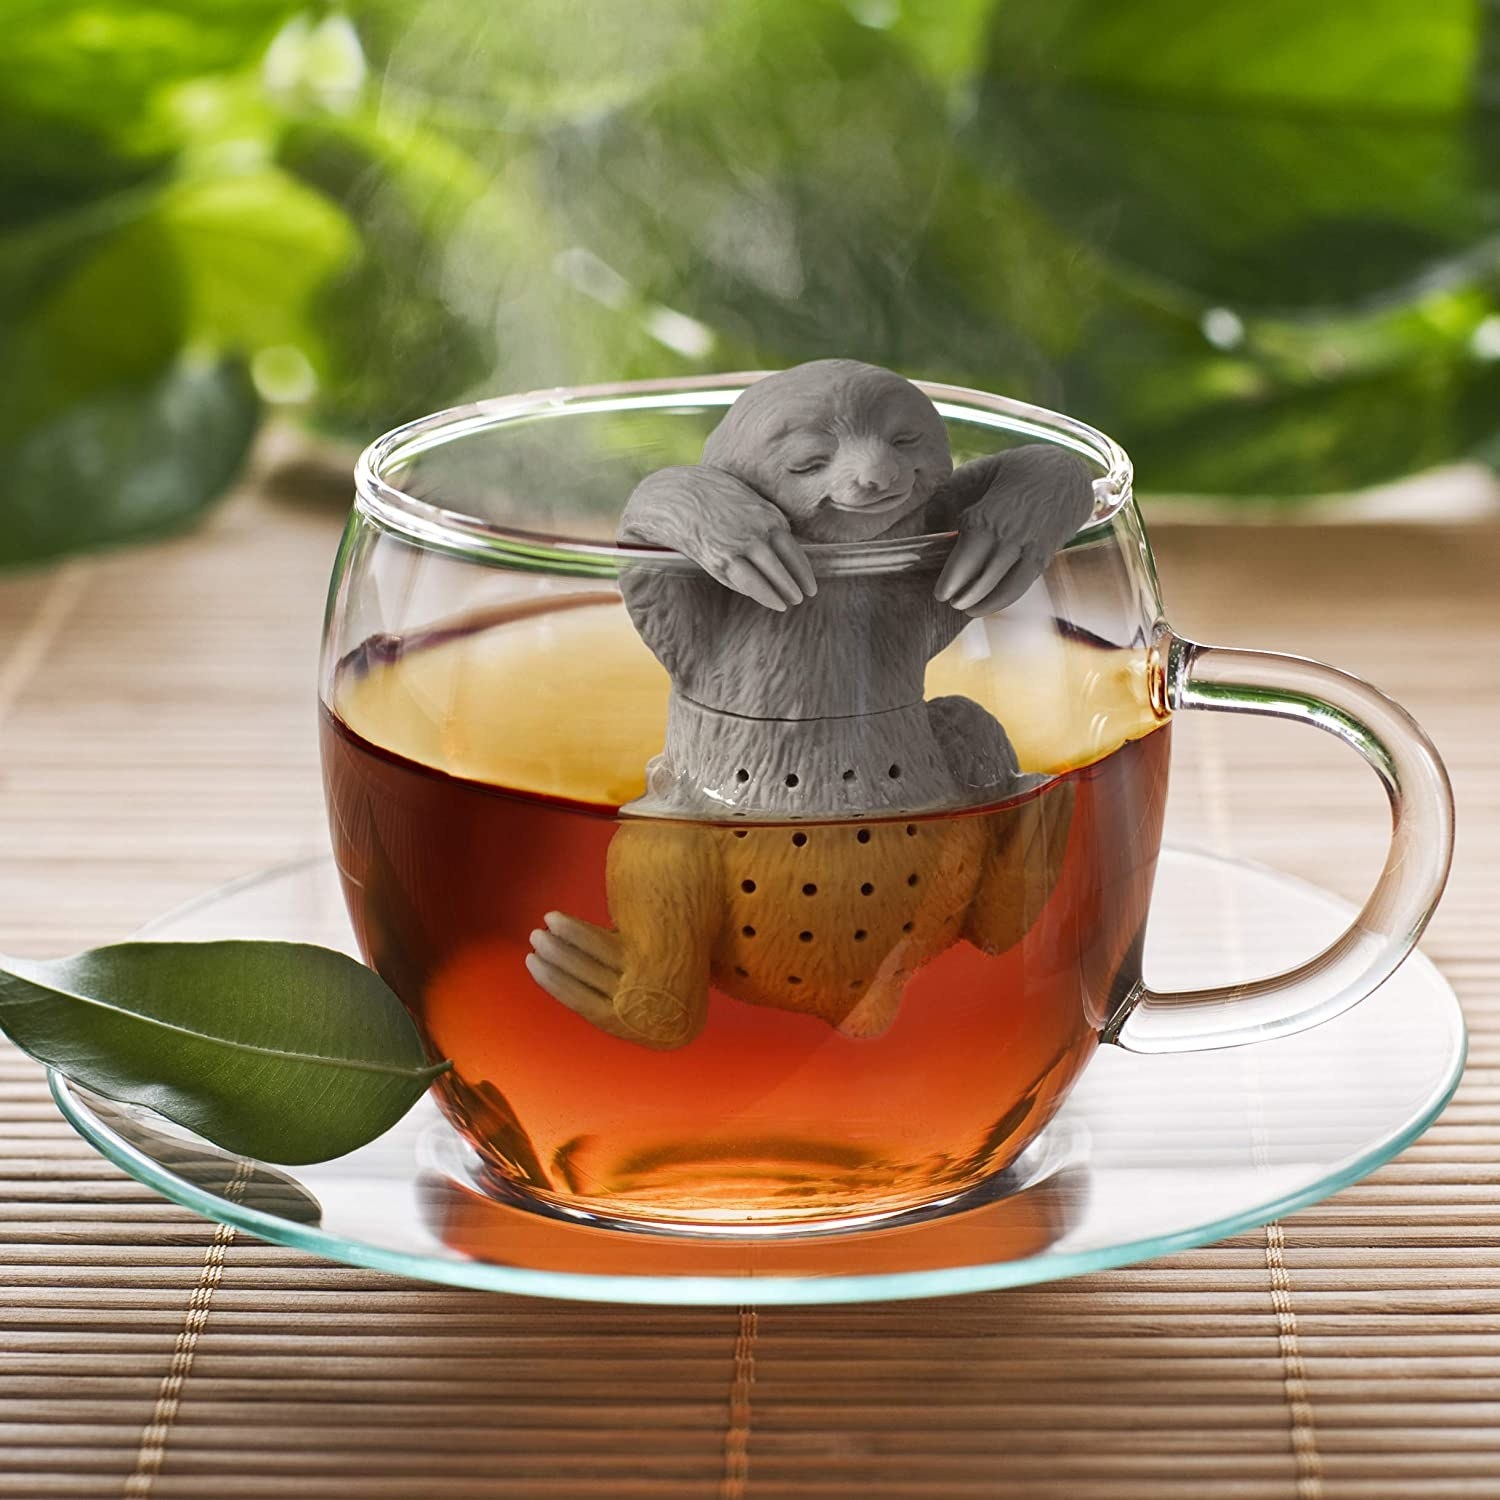 A sloth tea strainer sits in a coup of tea on a glass plate on a table